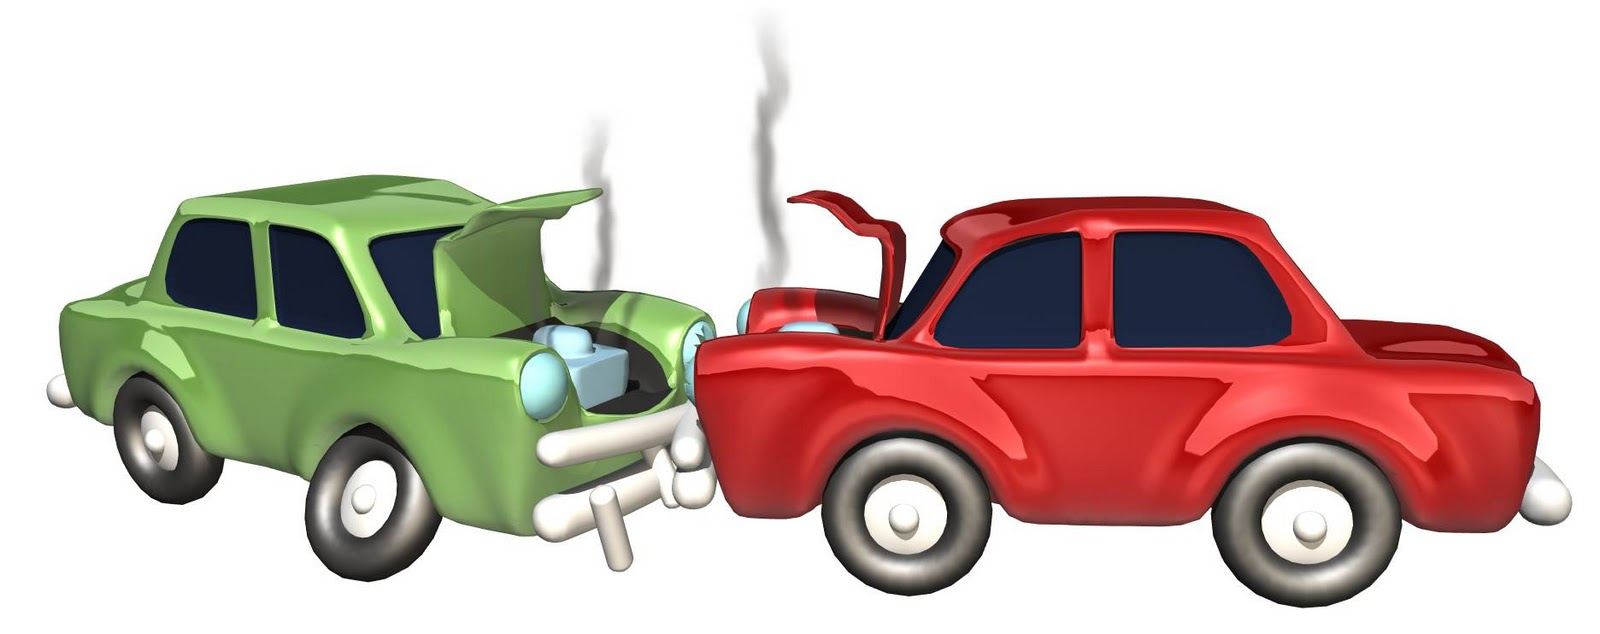 Crash clipart crashed car Art clipart wrecked Clip Car